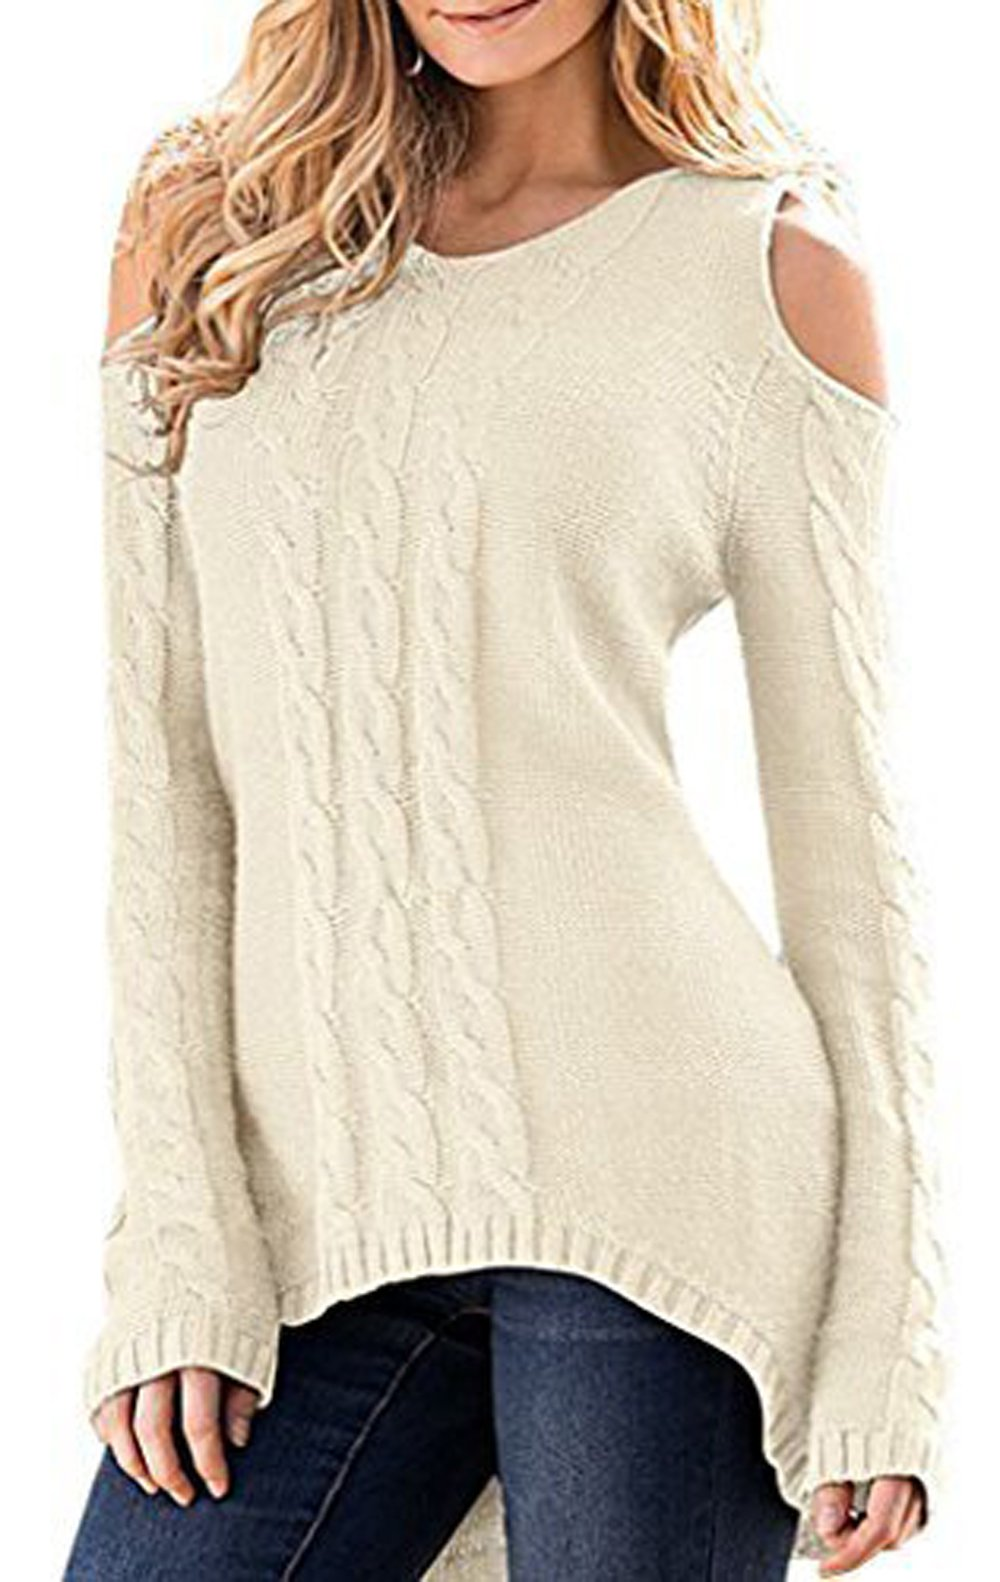 Merryfun Women's Cold Shoulder Sweater Fall Long Sleeve Knit Pullover Tops Beige,L